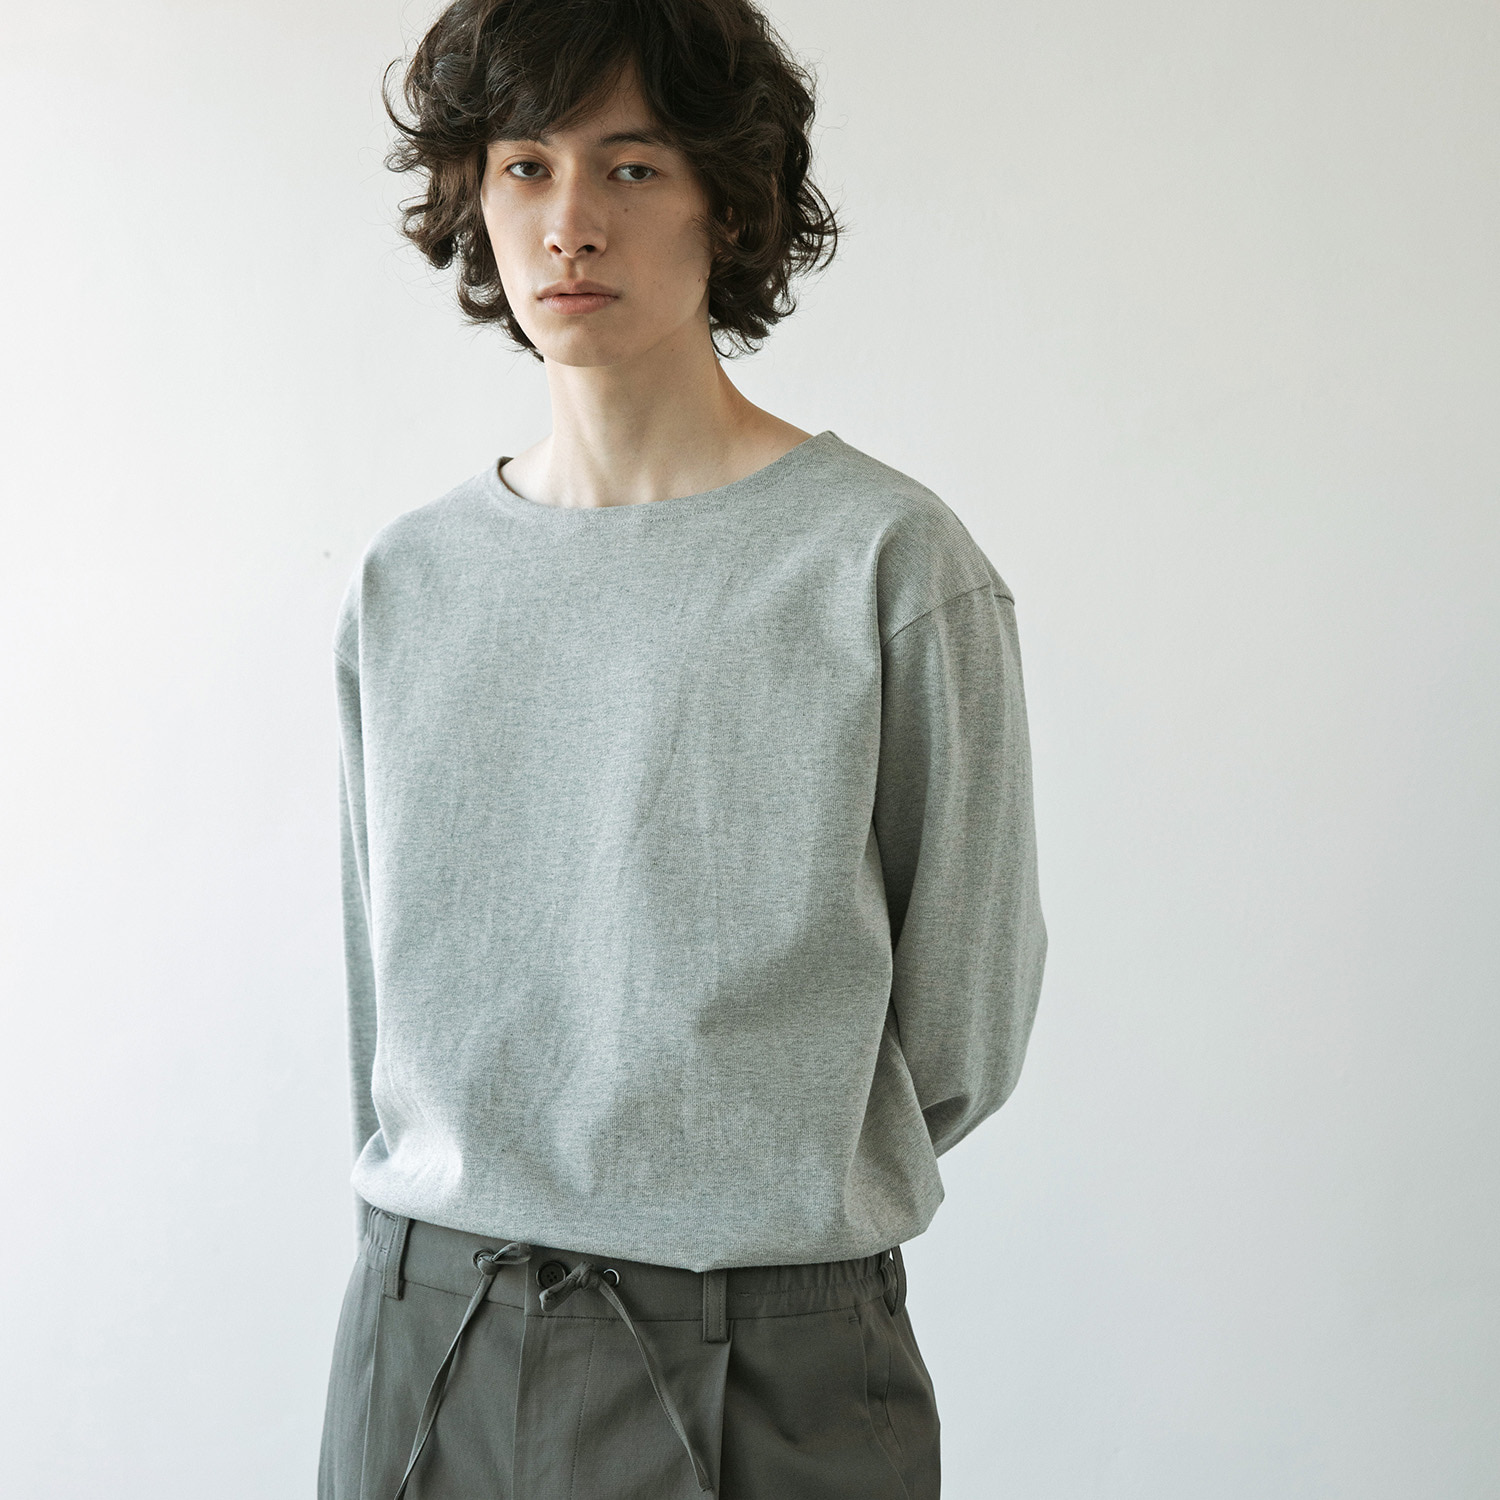 Upright Basqueshirt (Heather Gray)